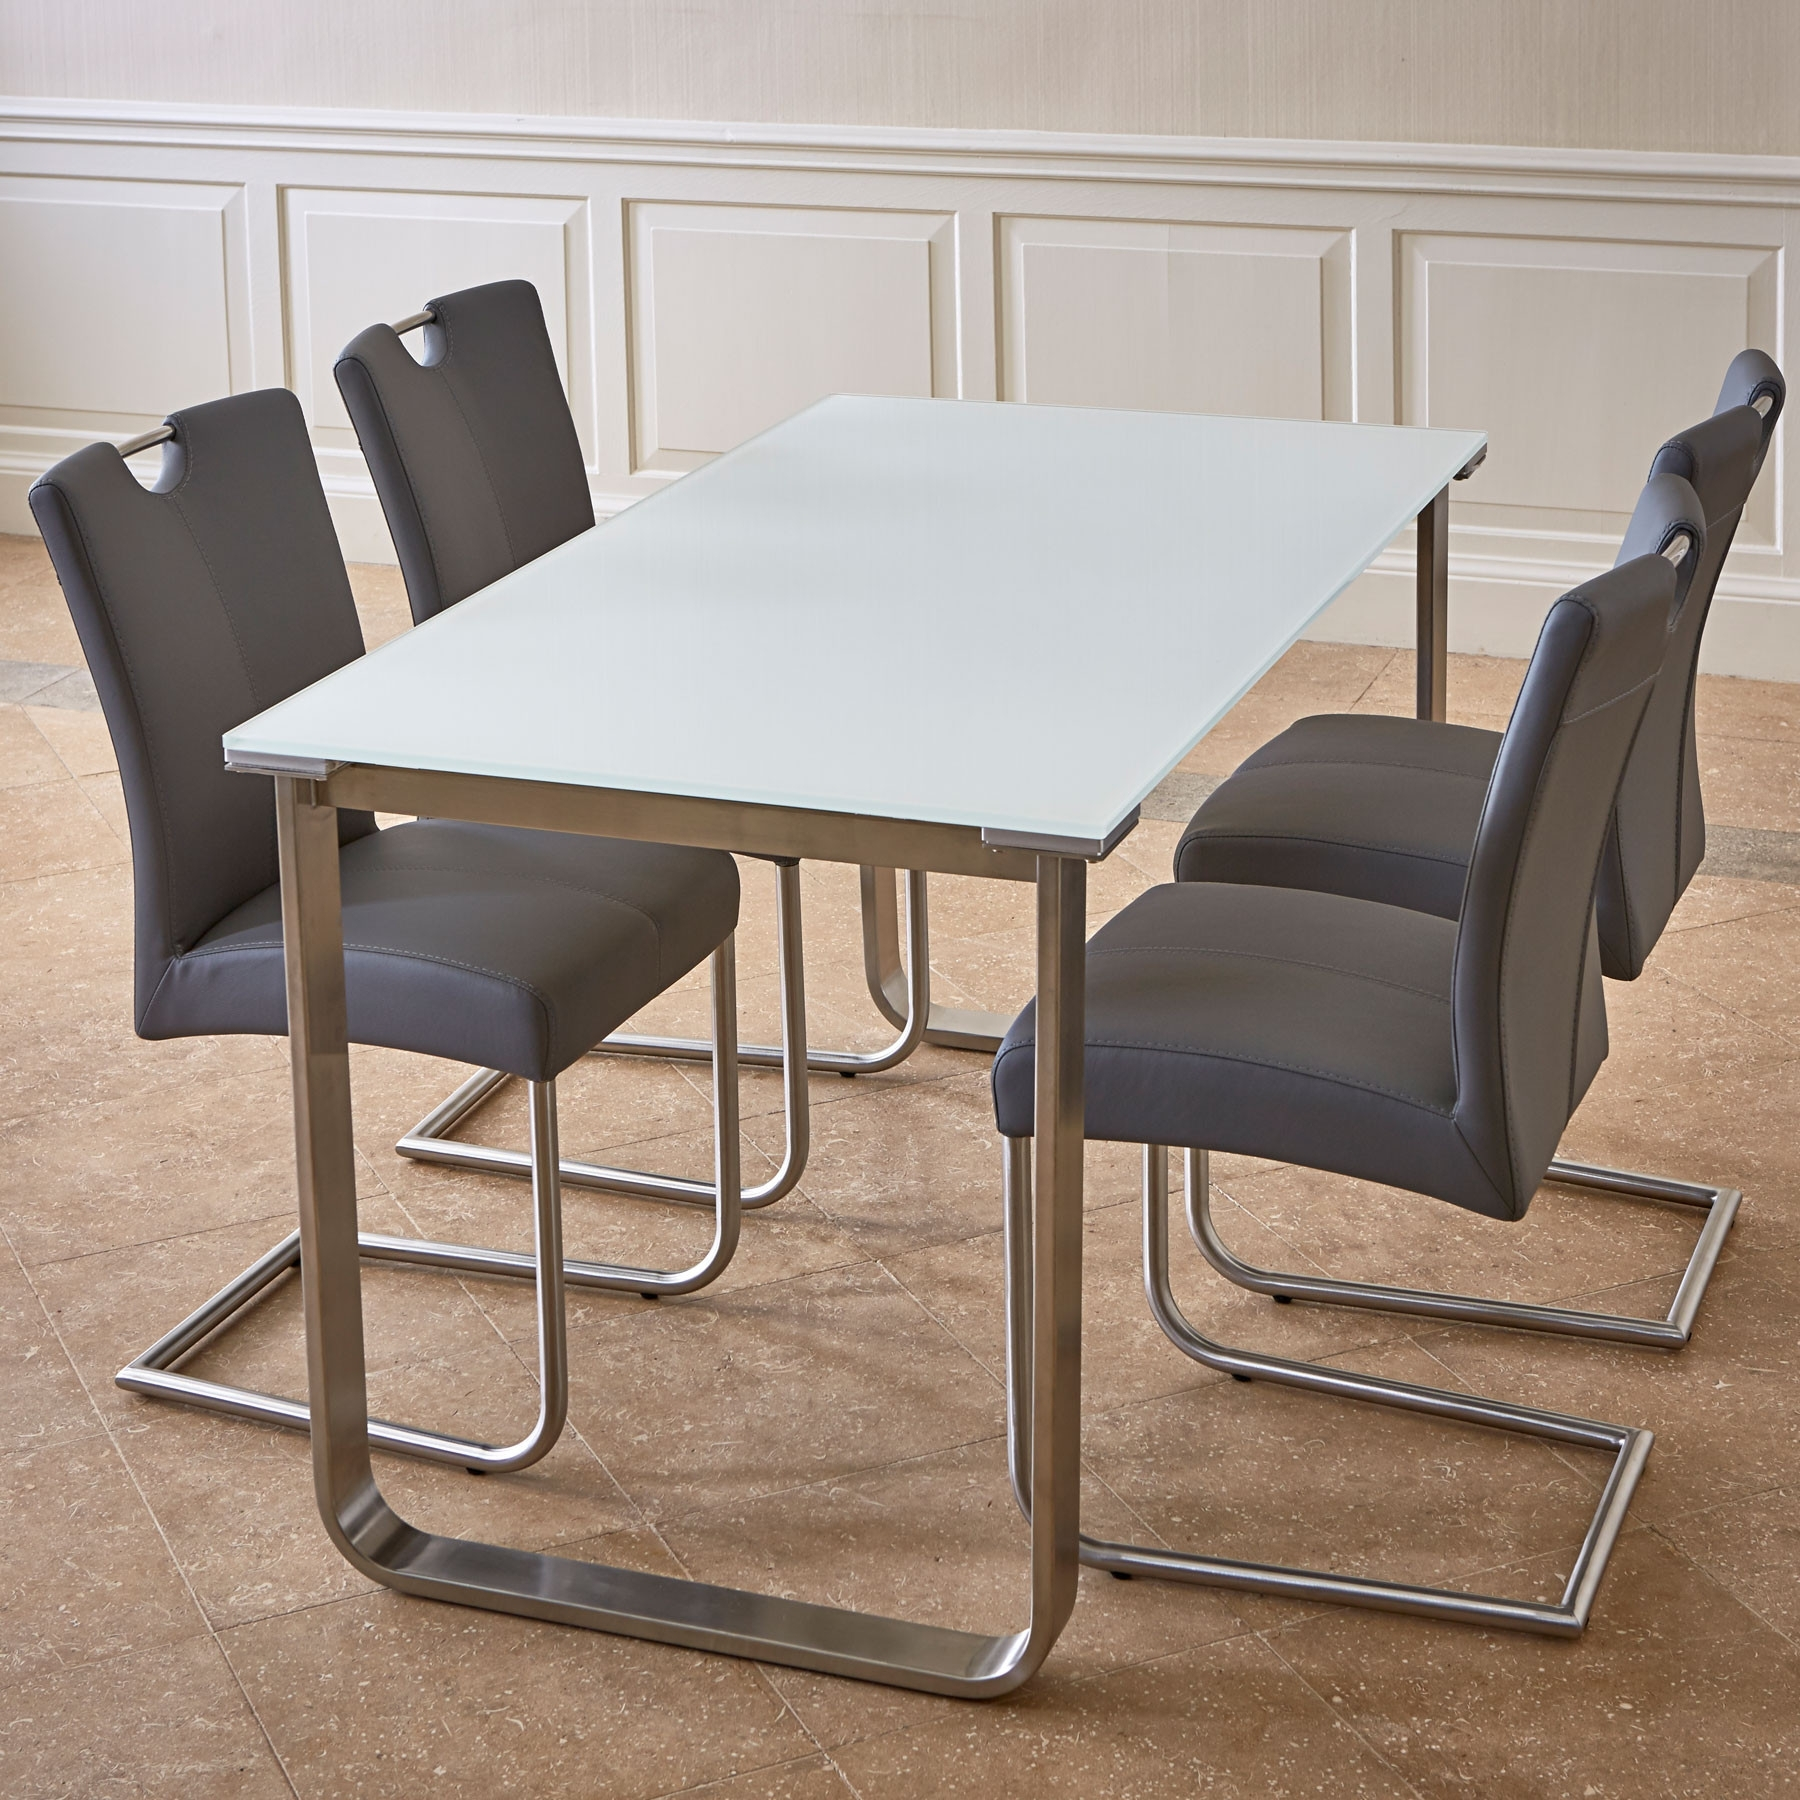 Best And Newest Glass Dining Tables White Chairs Within Pluto White Glass Dining Table & 4 Chairs (View 5 of 25)